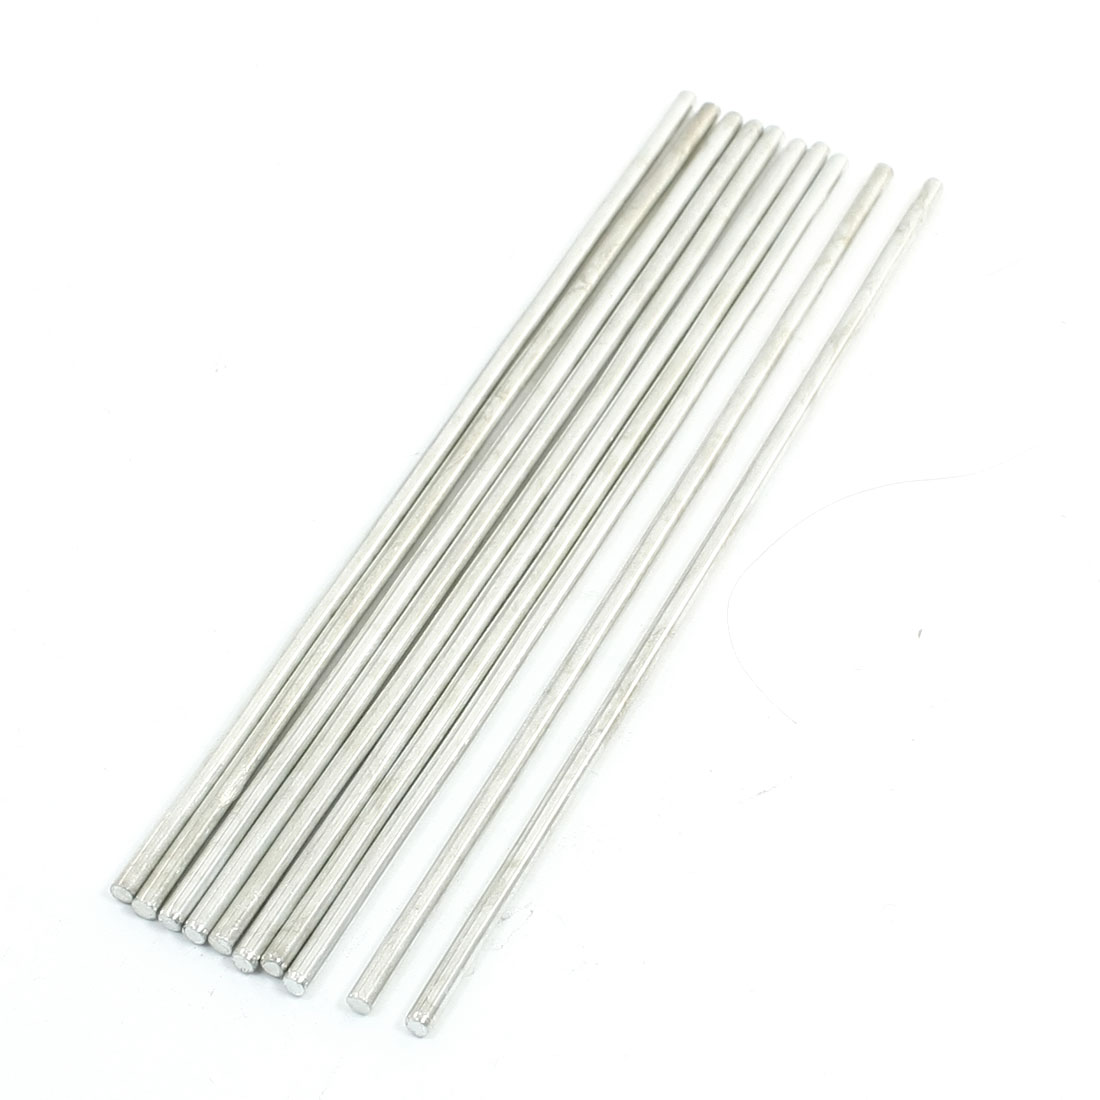 10Pcs 150 x 3mm Stainless Steel Cylinder Linear Rail Round Rod Shaft